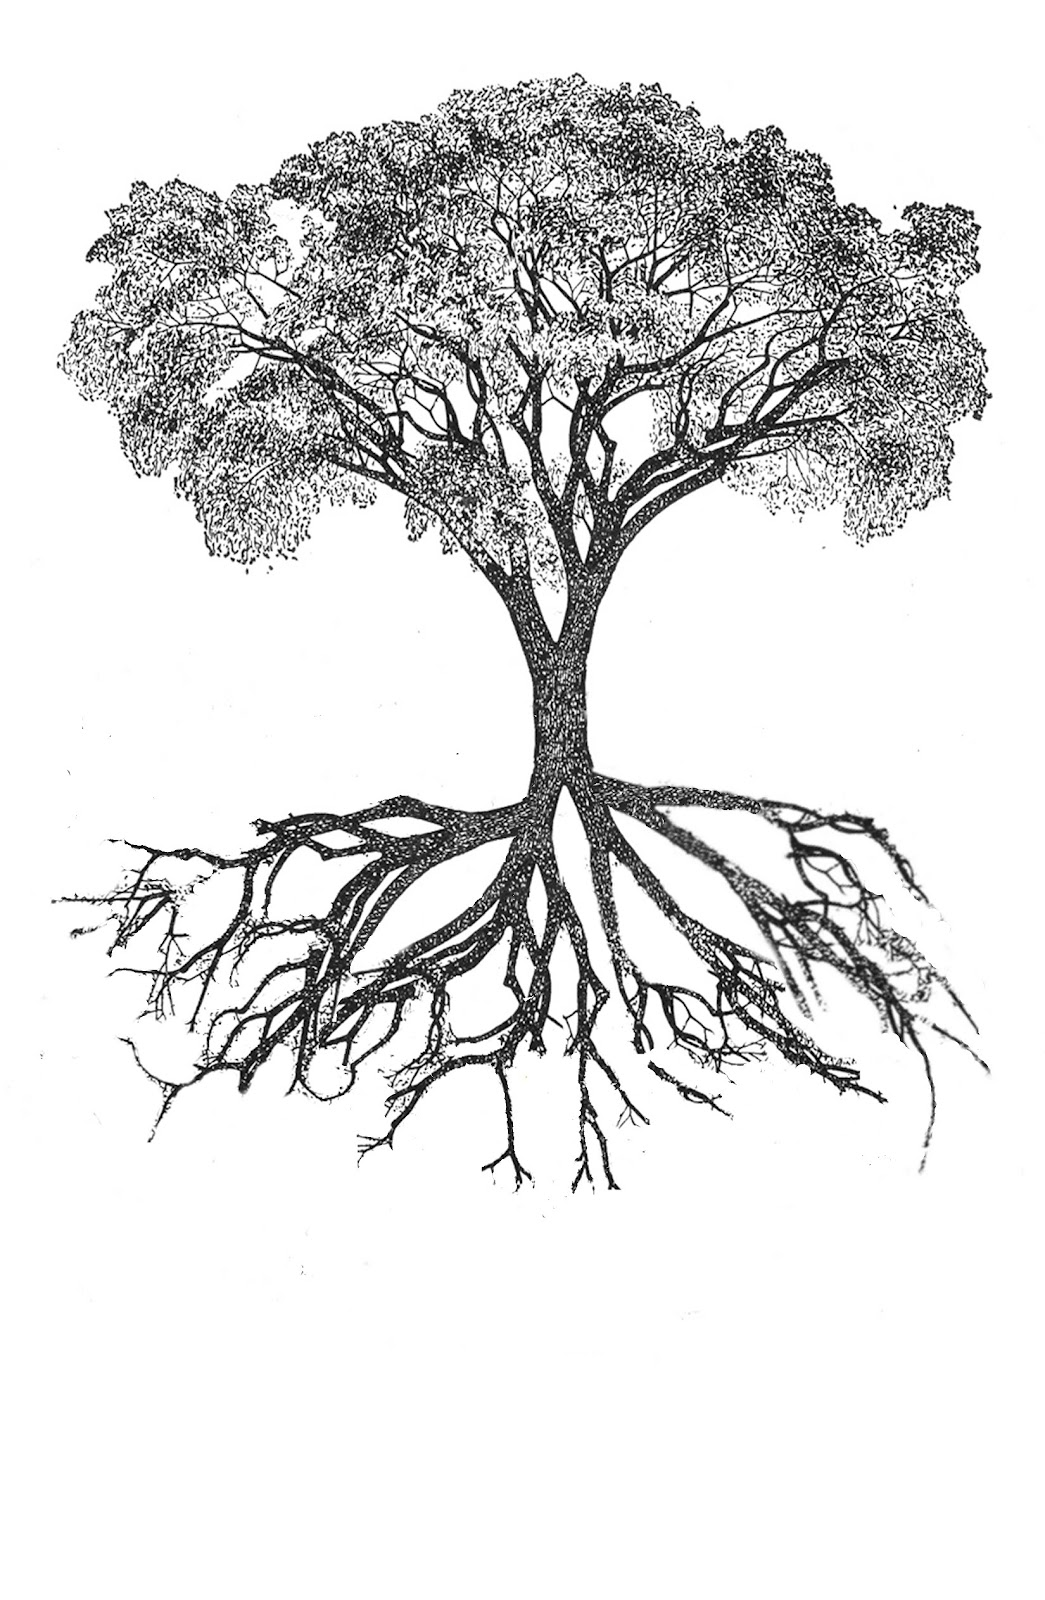 Botany Professor The Root Of The Root Problem